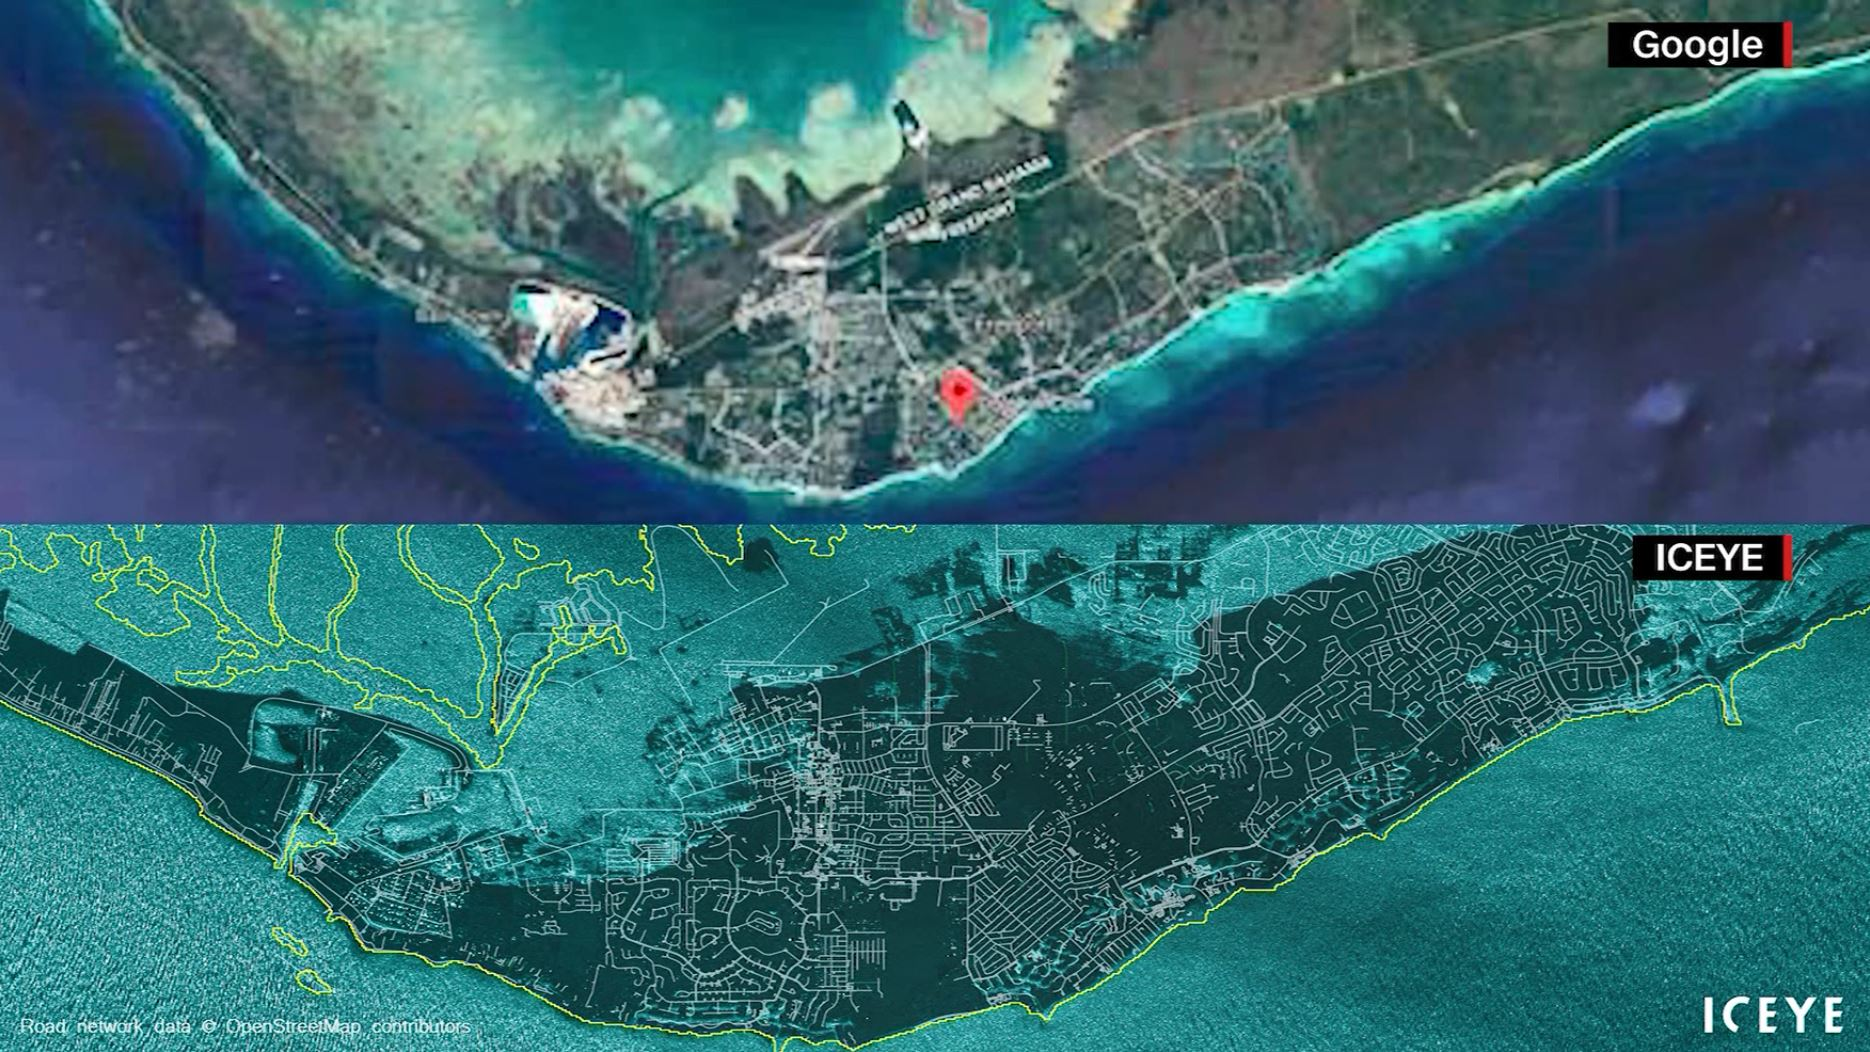 Before and after Dorian: Satellite images show extent of